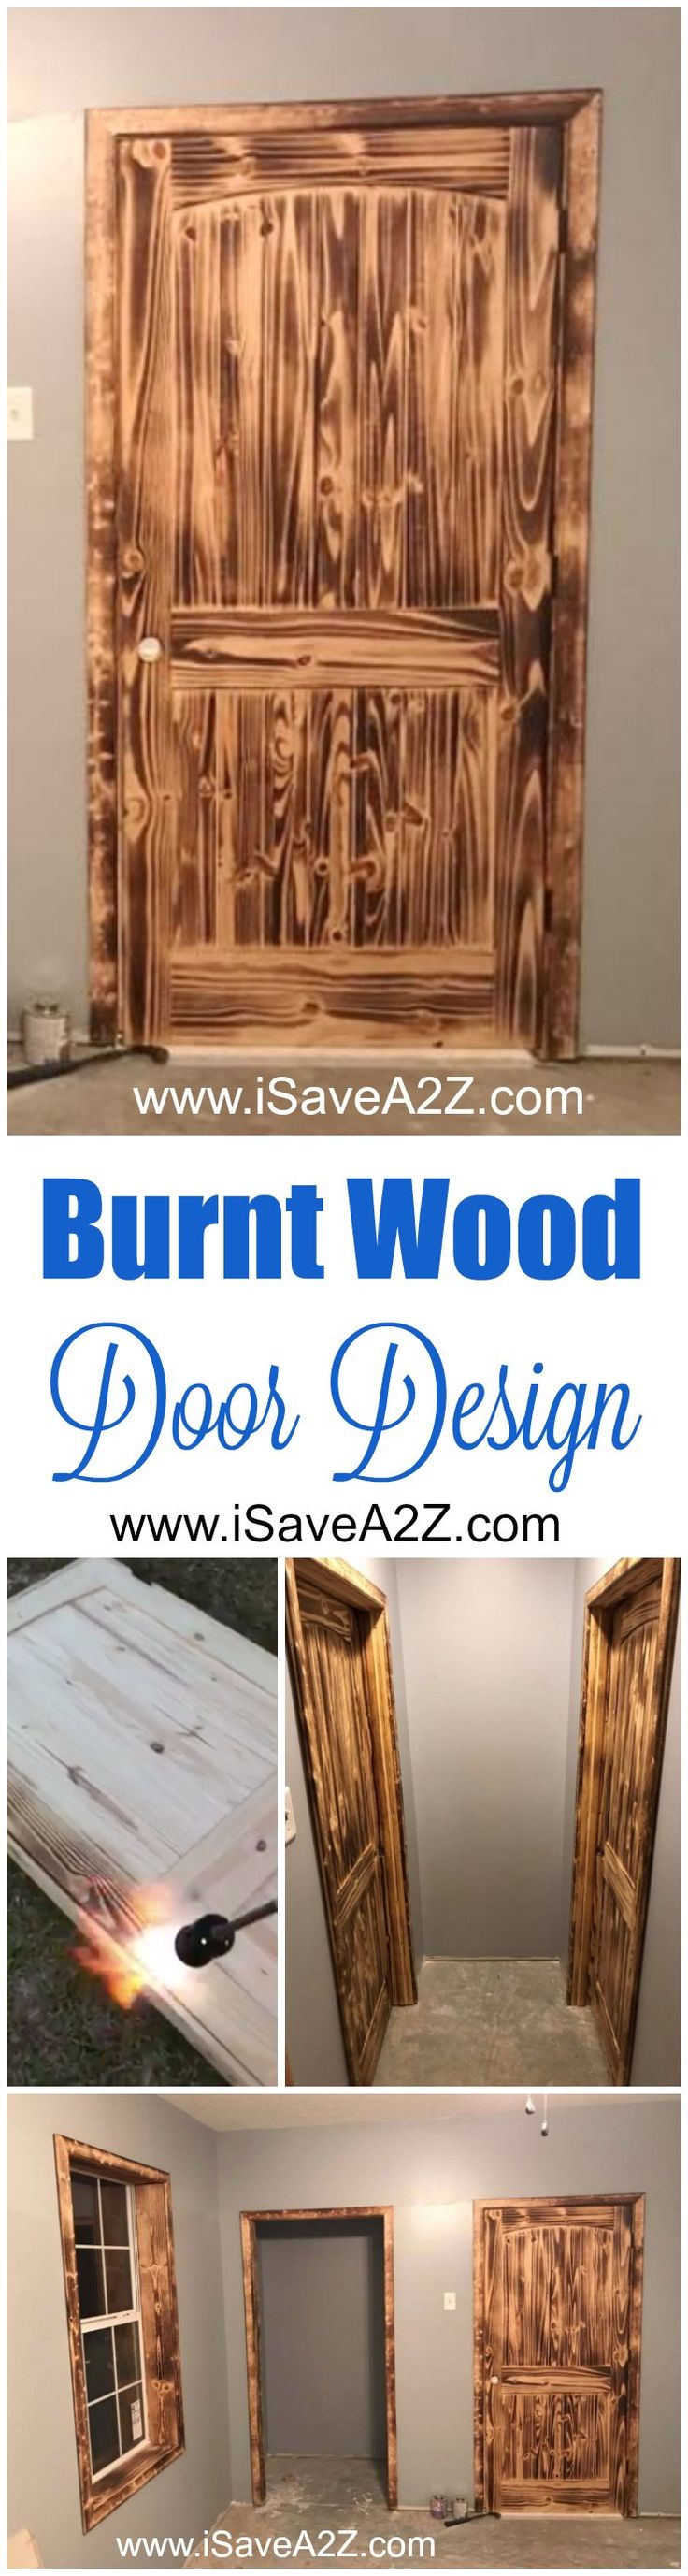 Absolutely STUNNING Burnt Wood Door design idea that I am in LOVE with!!